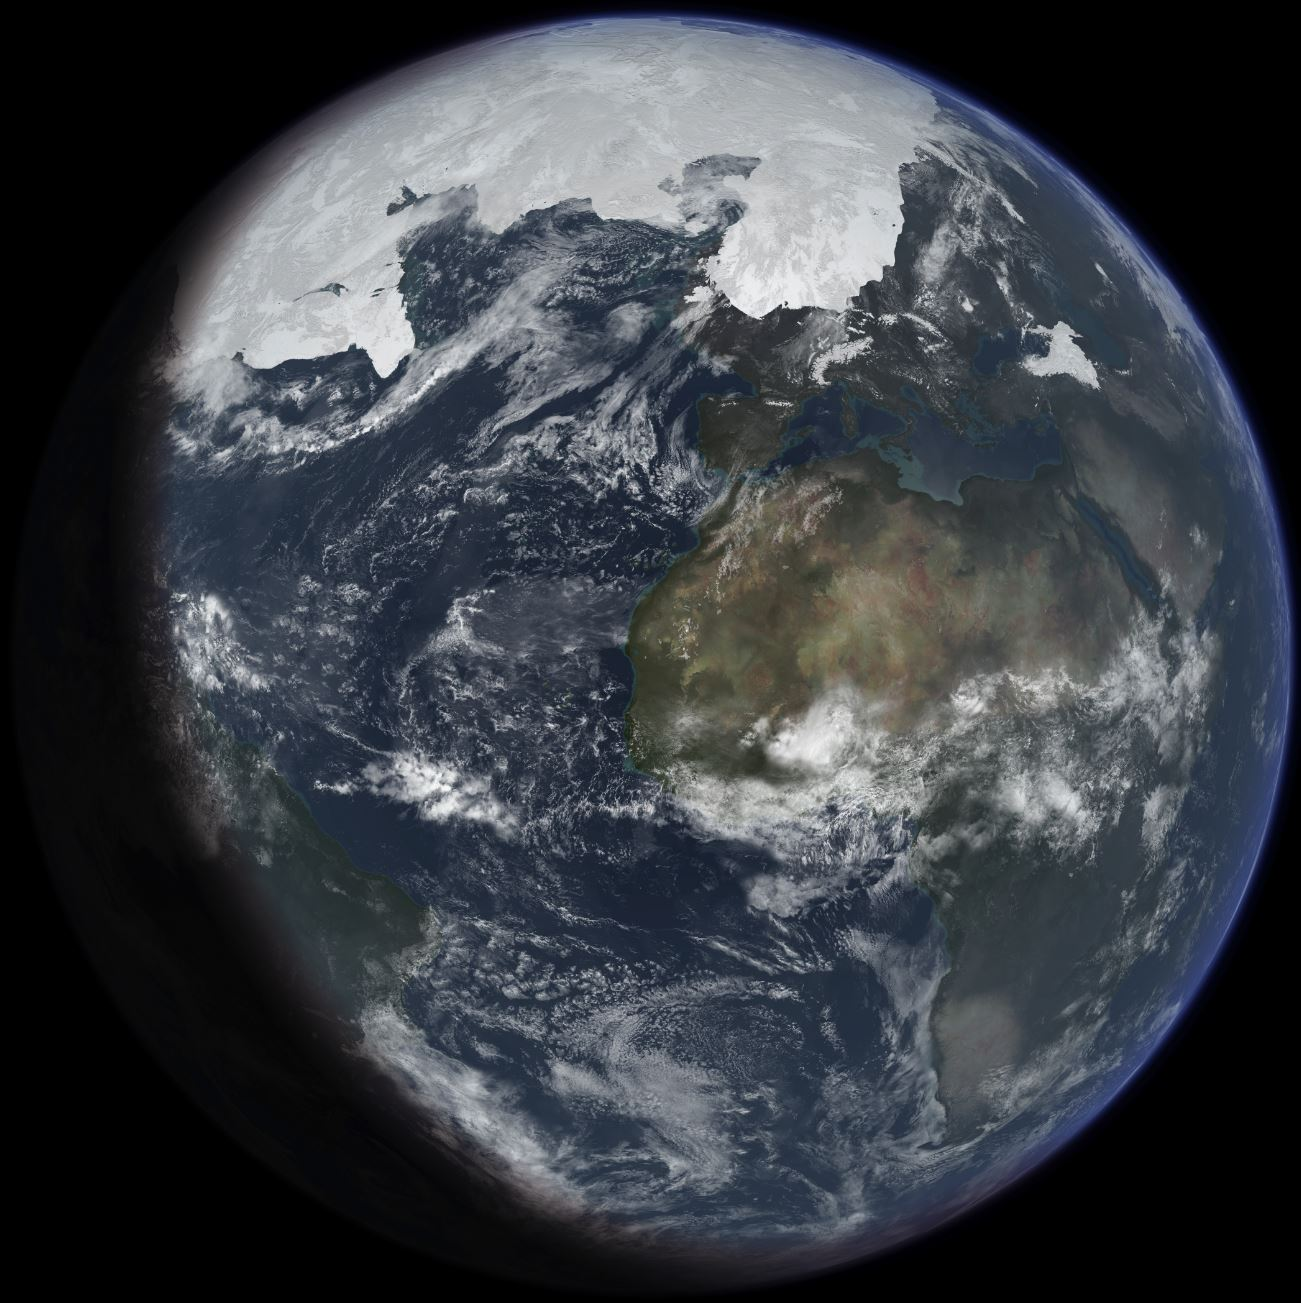 An artist's impression of ice age Earth at glacial maximum – Image Credit: Ittiz/WikimediaCommons